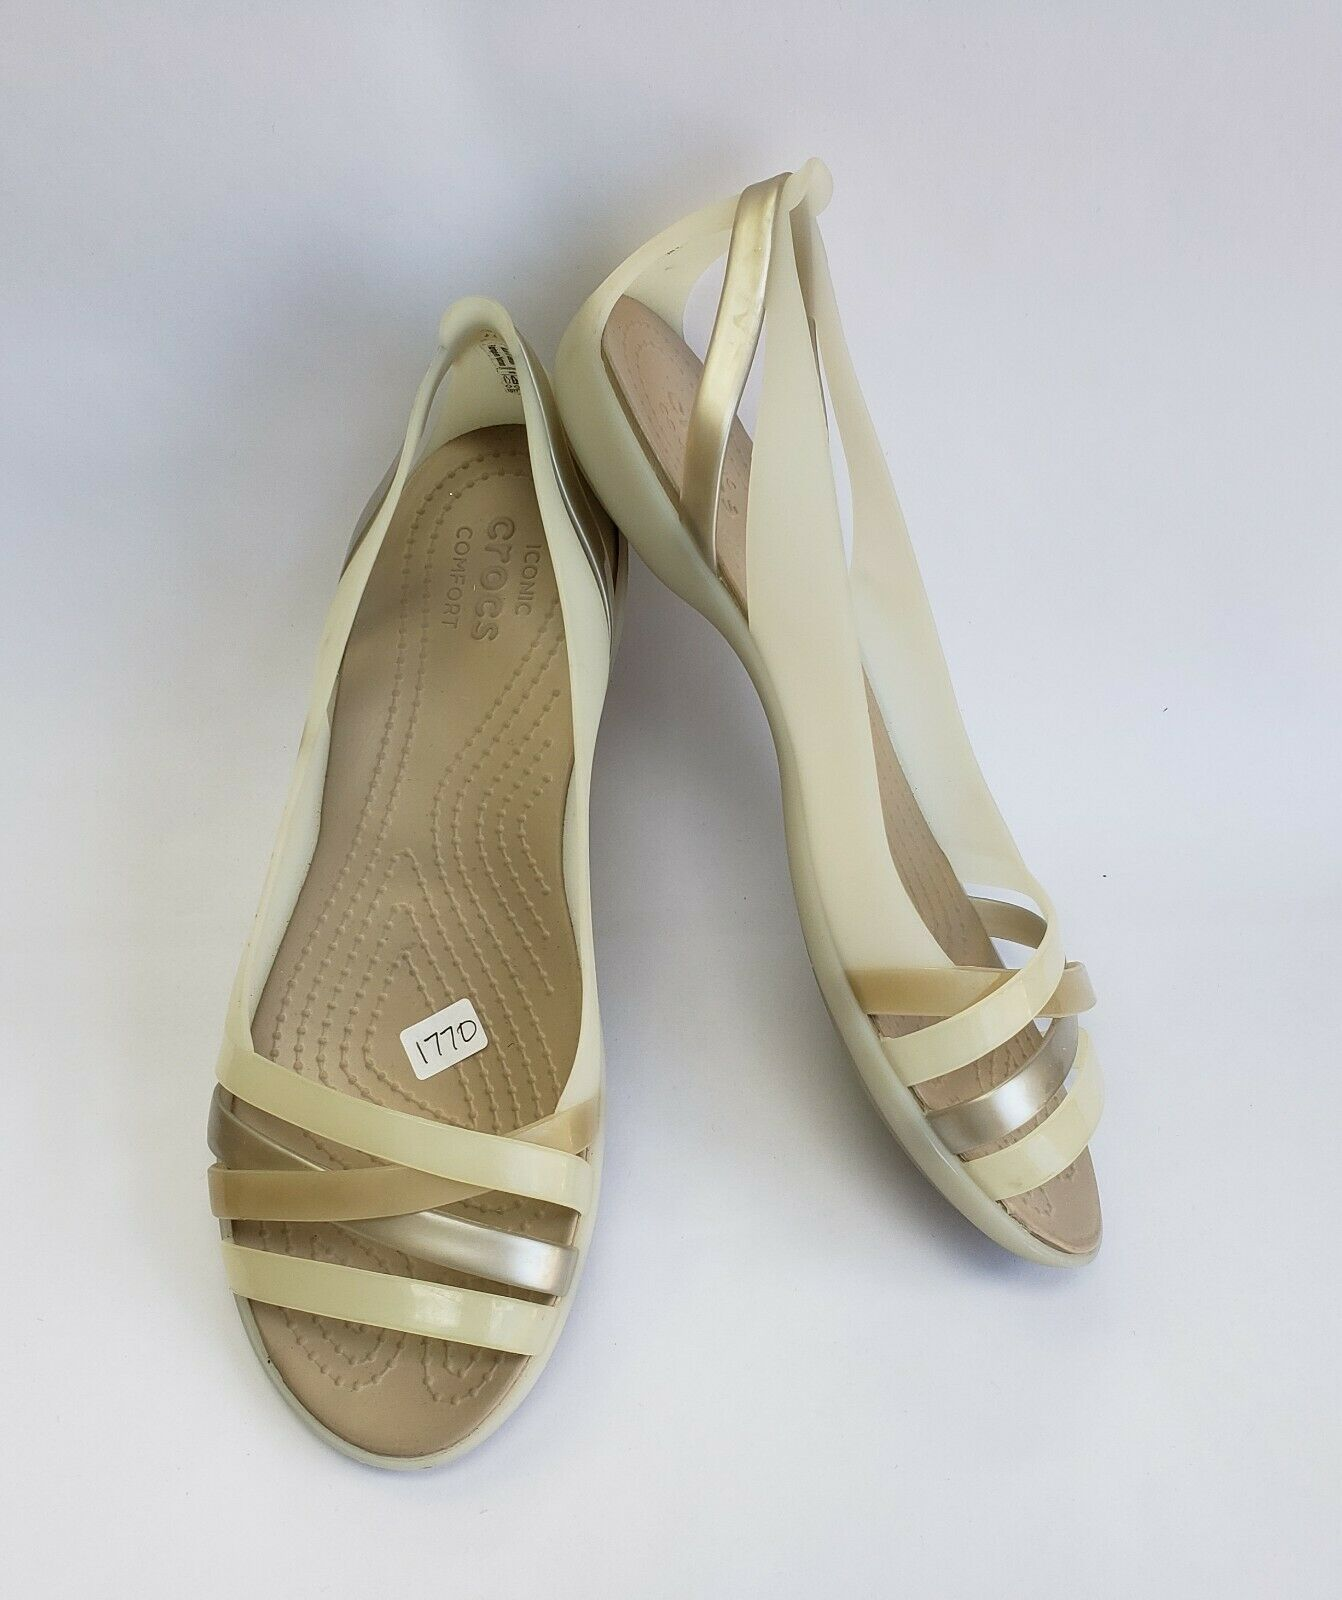 5b79a7735f4 Crocs Shoes Sandals Strappy Oyster Pearl and 50 similar items